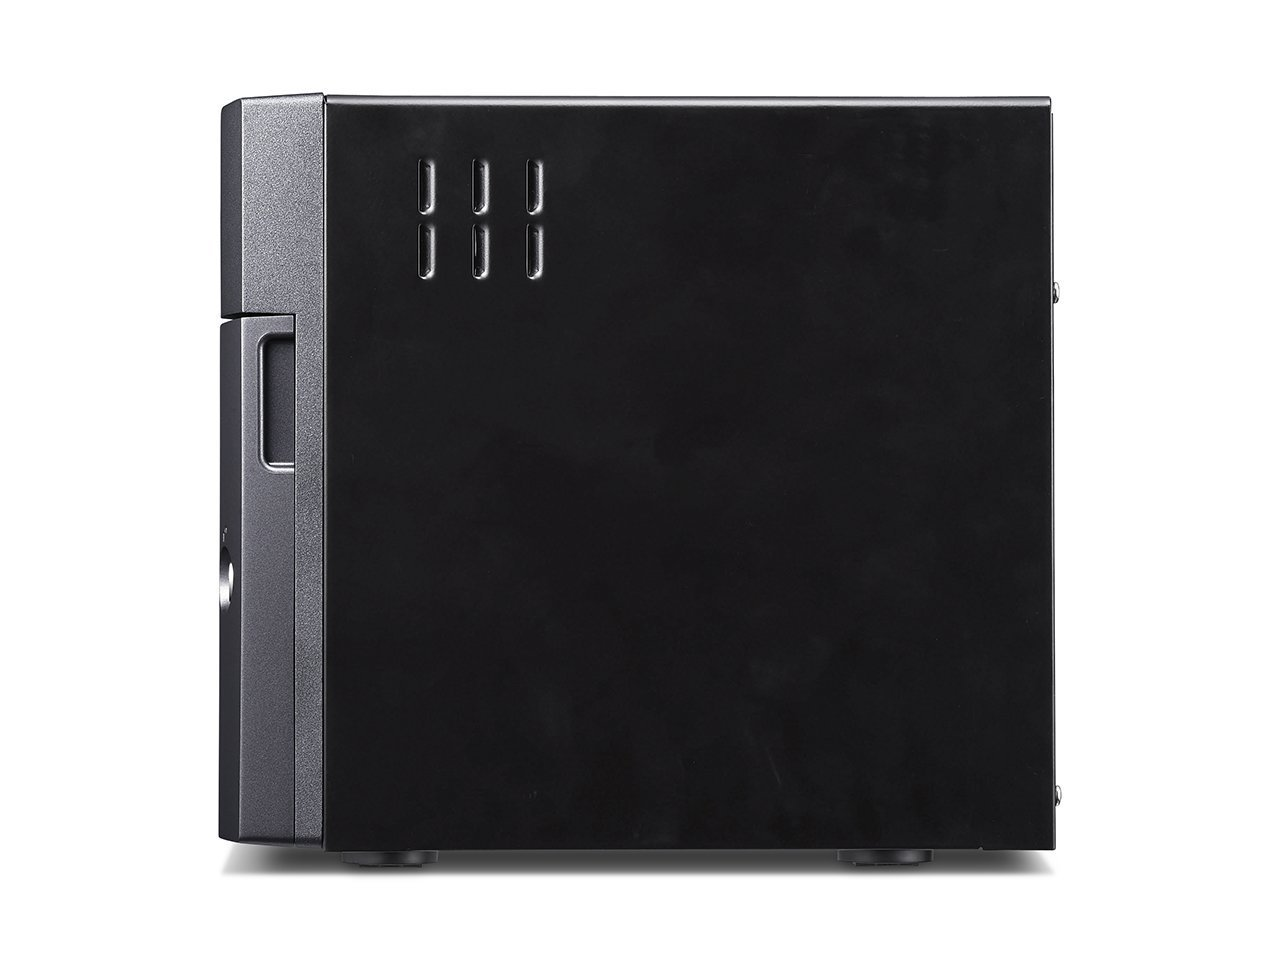 BUFFALO Terastation 5410Dn Desktop 32 TB NAS Hard Drives Included